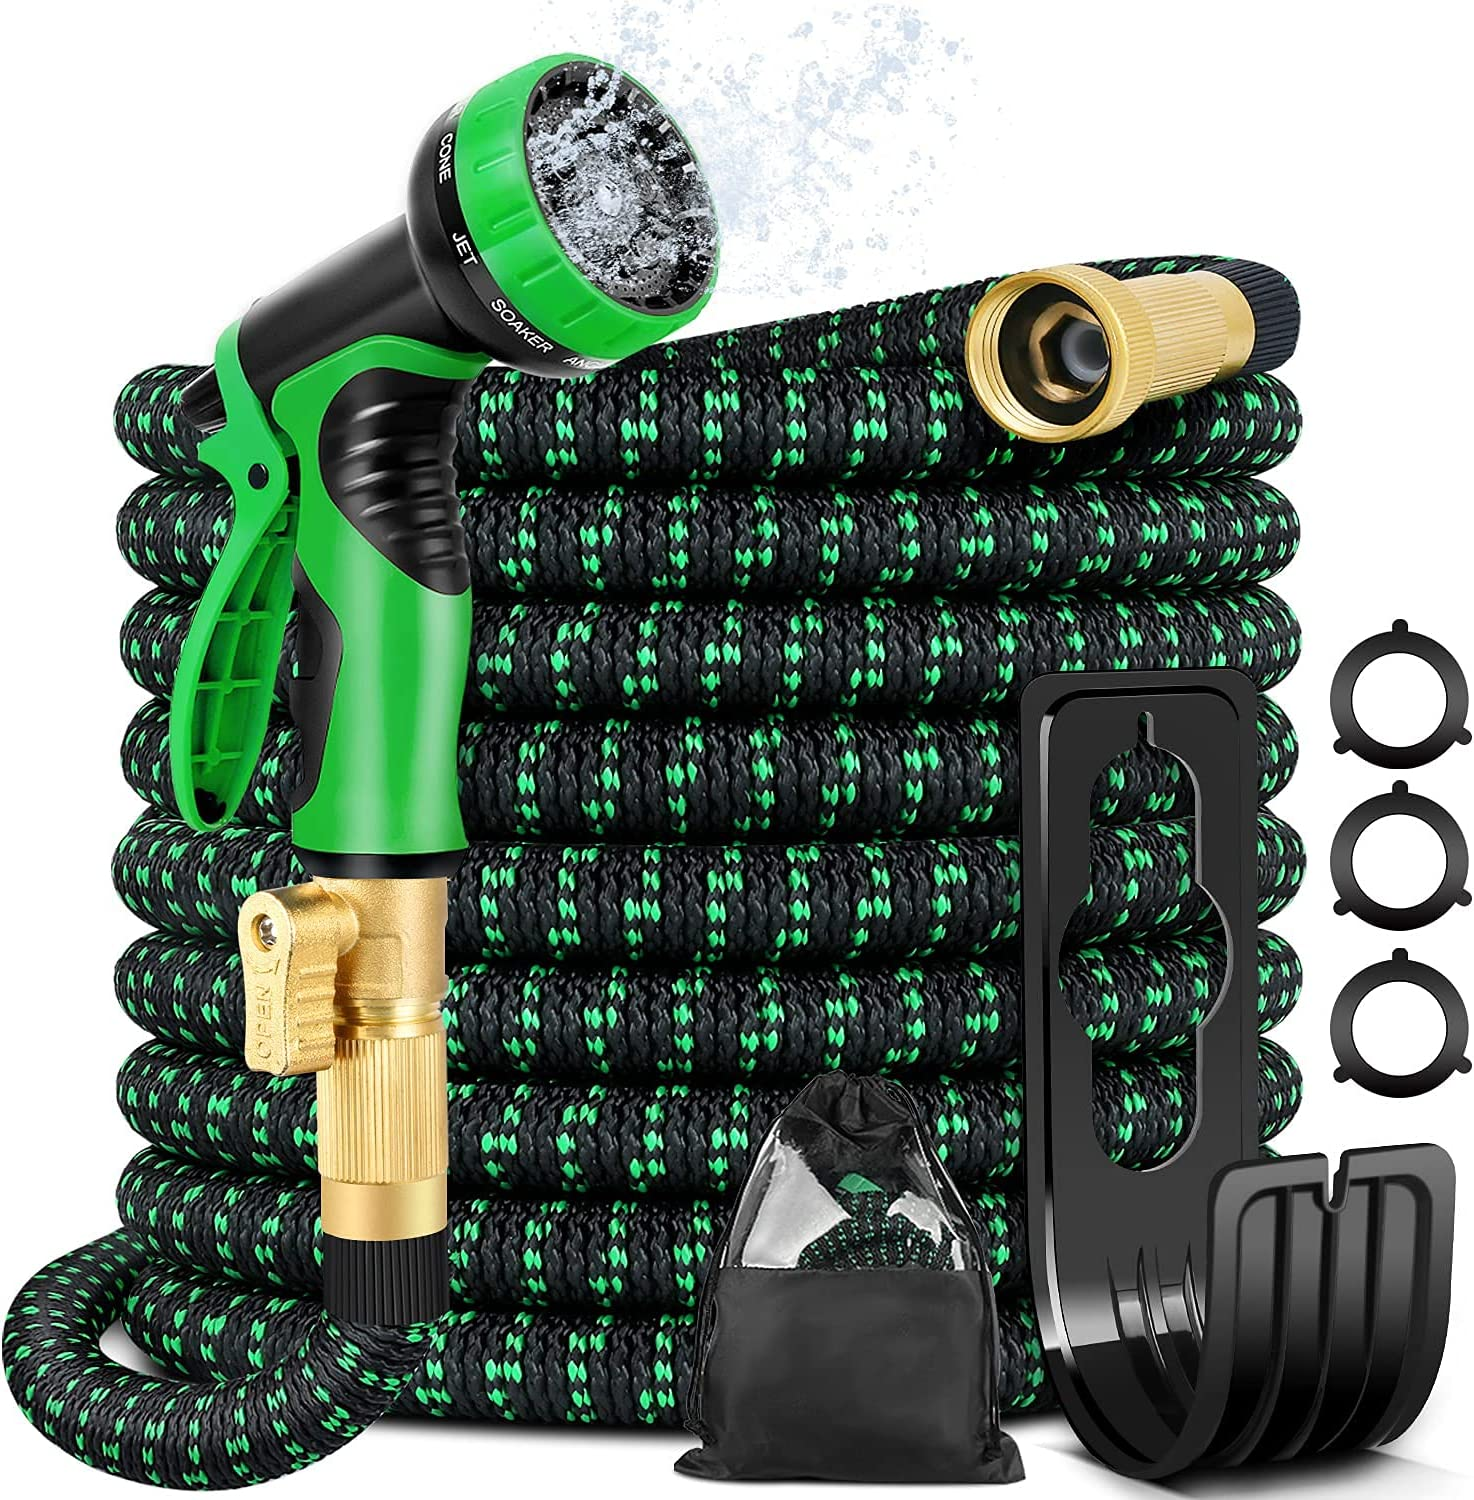 75ft Expandable Garden Hose - Flexible Water Hose with 10 Function Nozzle, 3/4 Solid Brass and Extra Strength 3750D Durable, Leakproof Lightweight Hose for Watering Flowers, Lawn, Cleaning